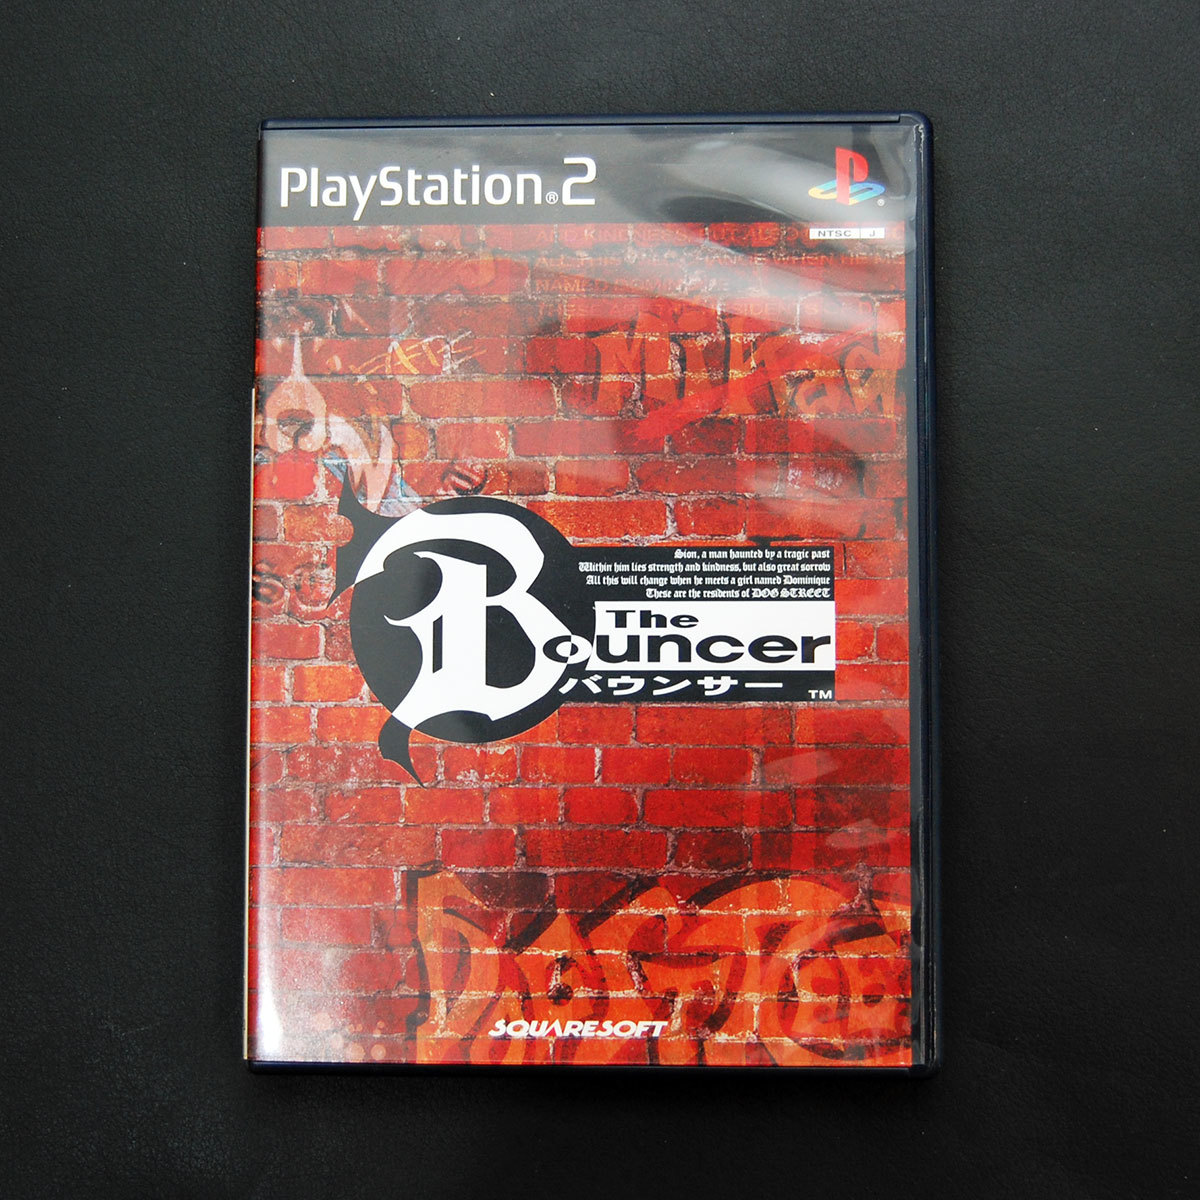 ◆PS2ソフト PlayStation 2◆The Bouncer バウンサー SQUARE SOFT スクウェア ソフト プレステ2 アクション RPG ACT 中古_画像1